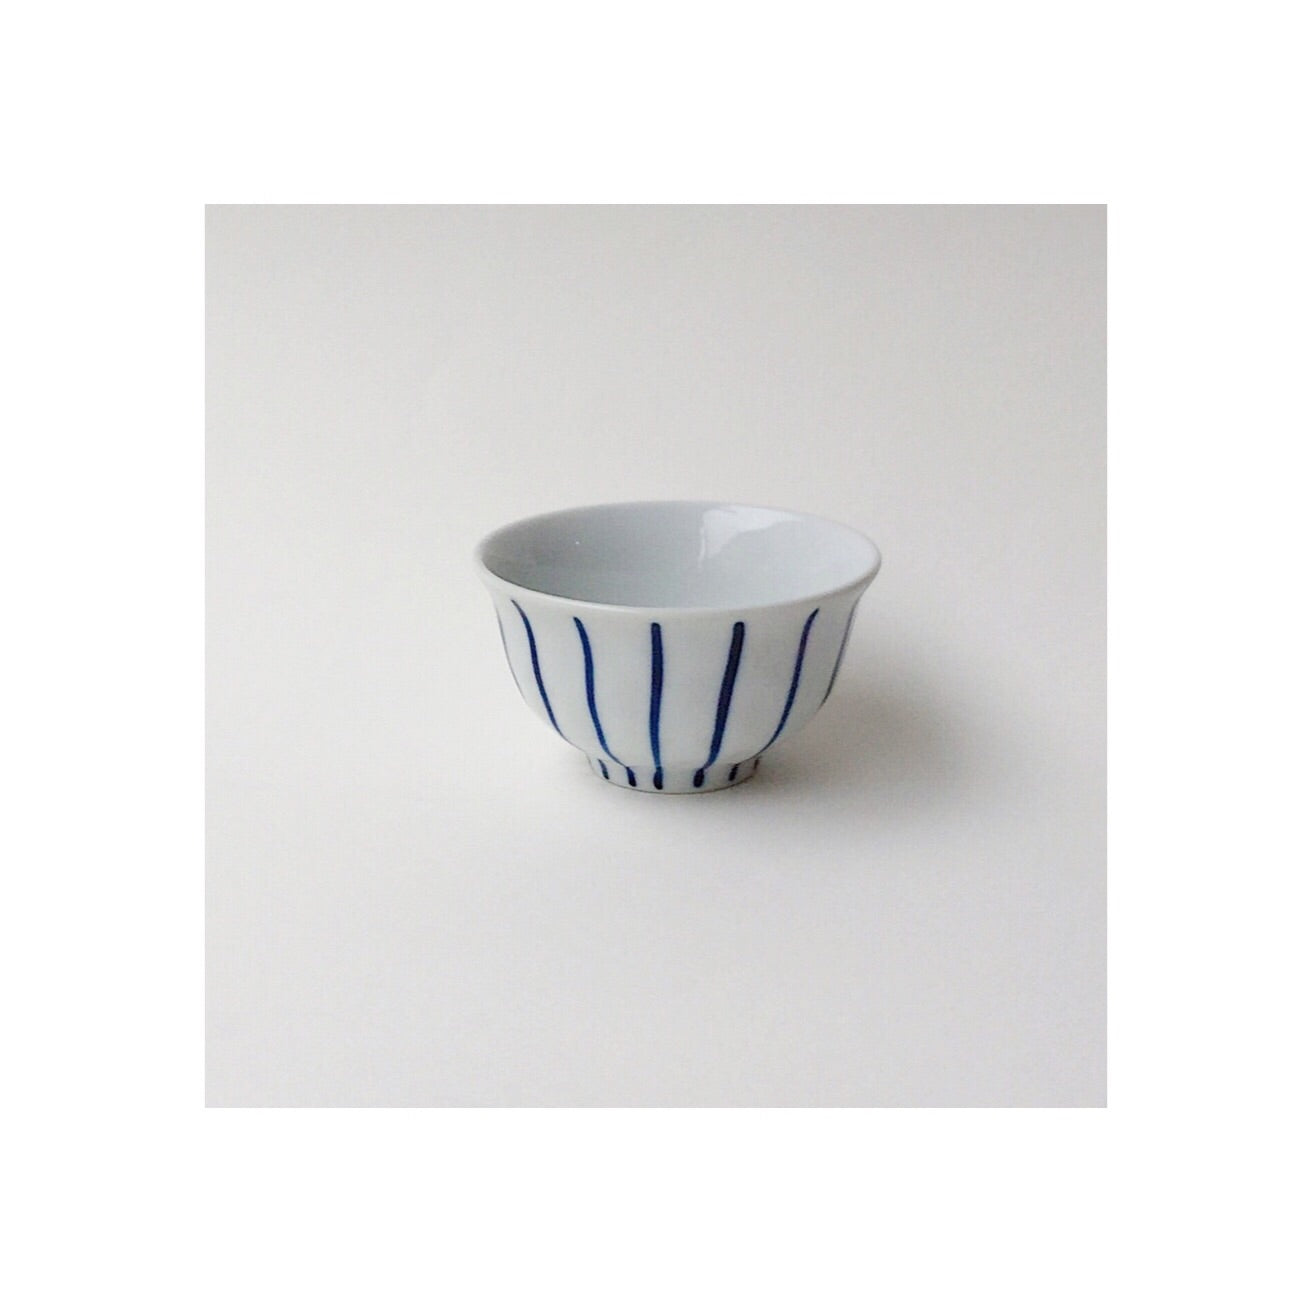 Japan series : Little bluestriped bowl